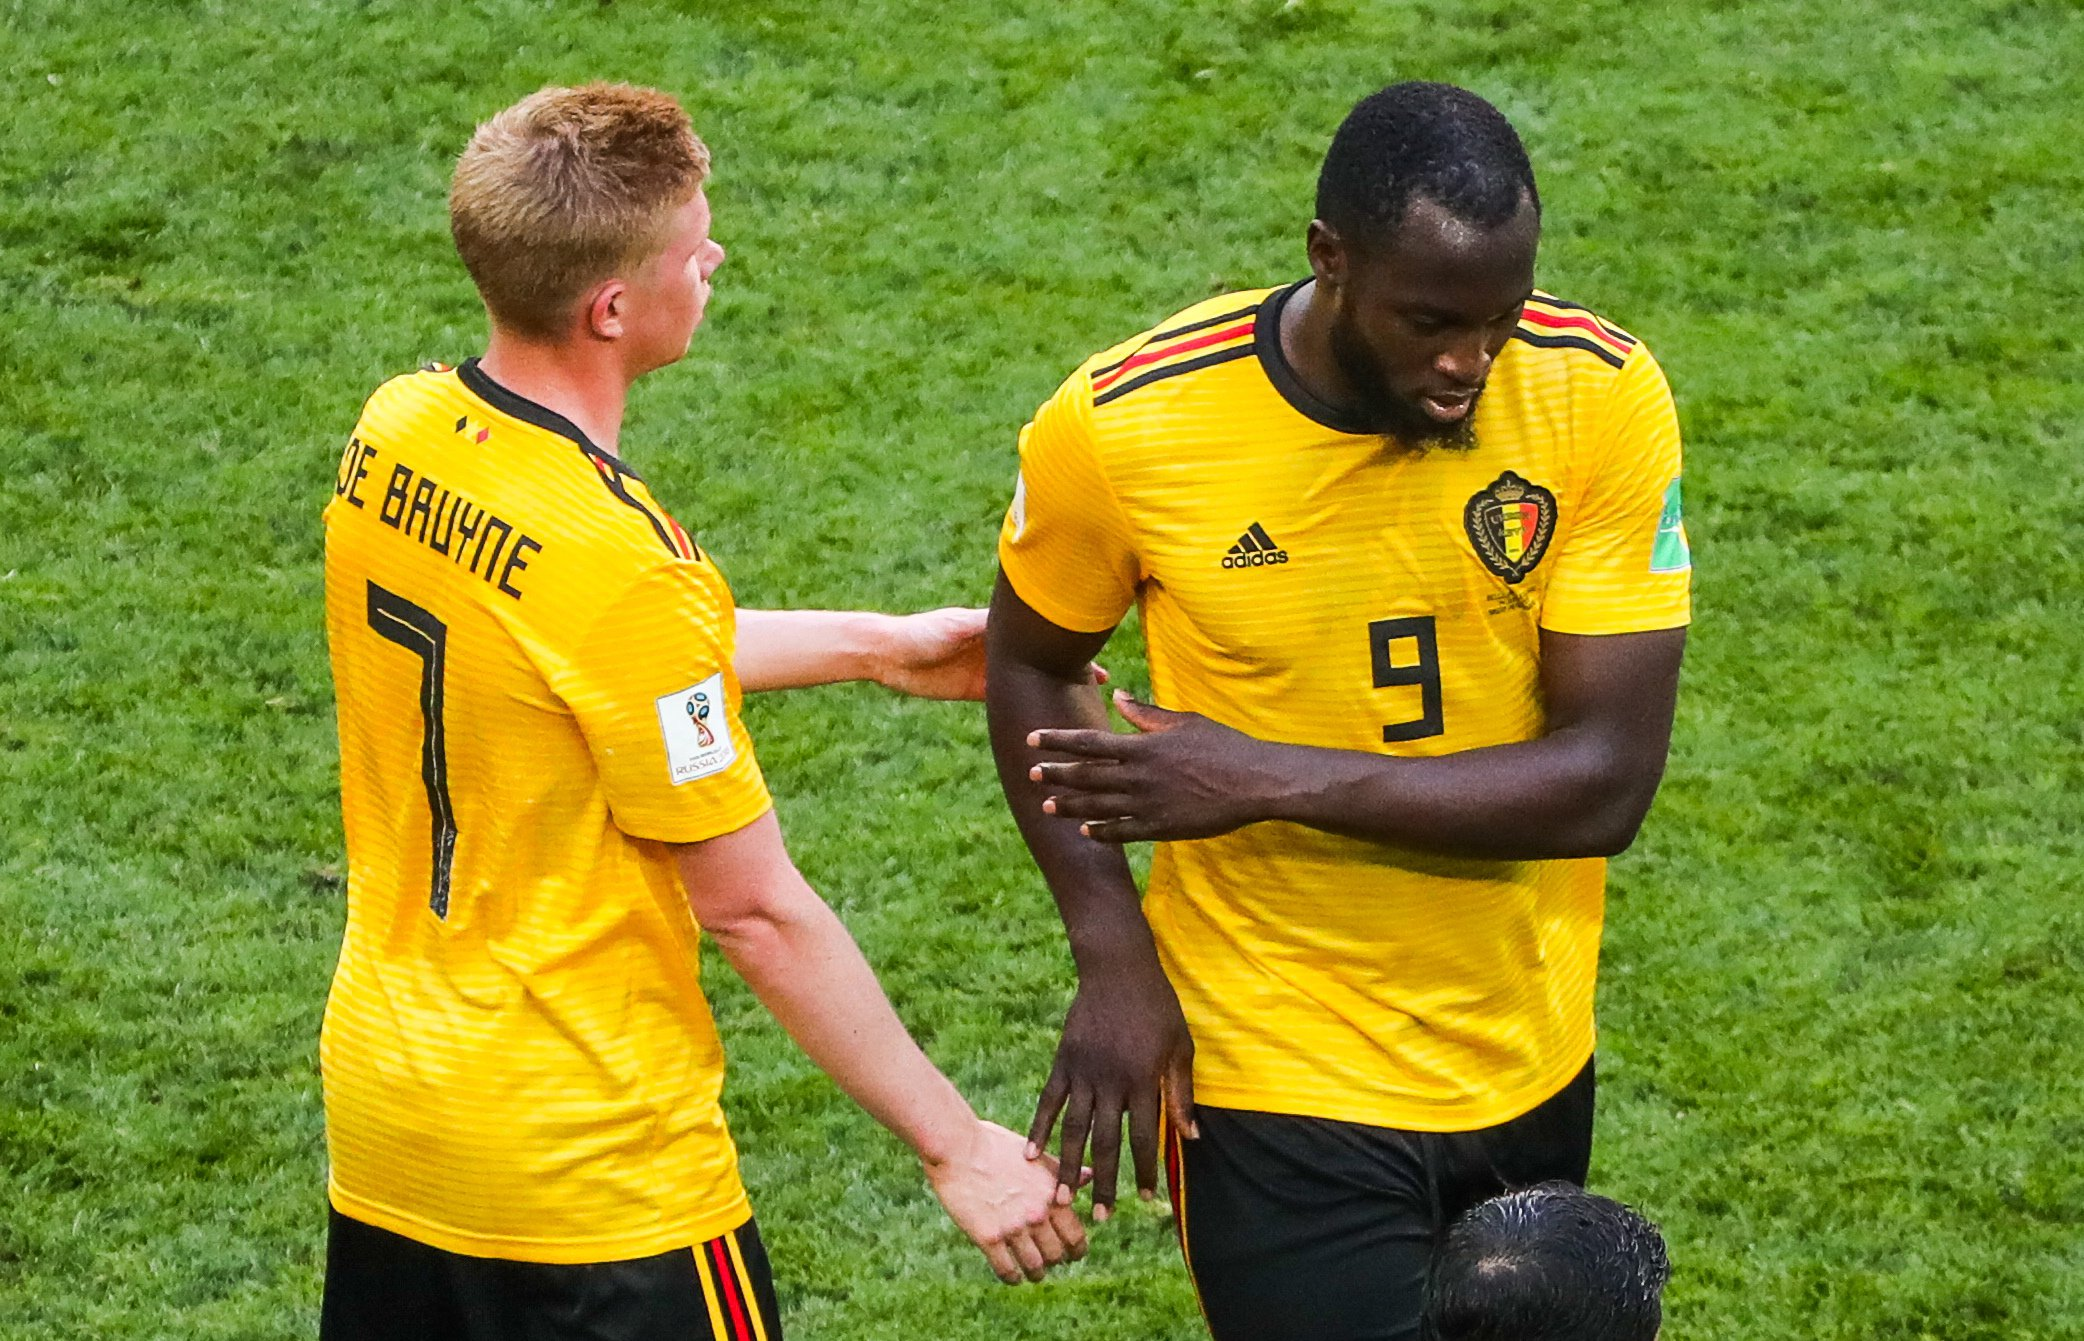 ST PETERSBURG, RUSSIA - JULY 14, 2018: Belgium's Kevin De Bruyne (L) and Romelu Lukaku in the 2018 FIFA World Cup Play-off for third place match against England at St Petersburg Stadium. Alexander Demianchuk/TASS (Photo by Alexander Demianchuk\TASS via Getty Images)